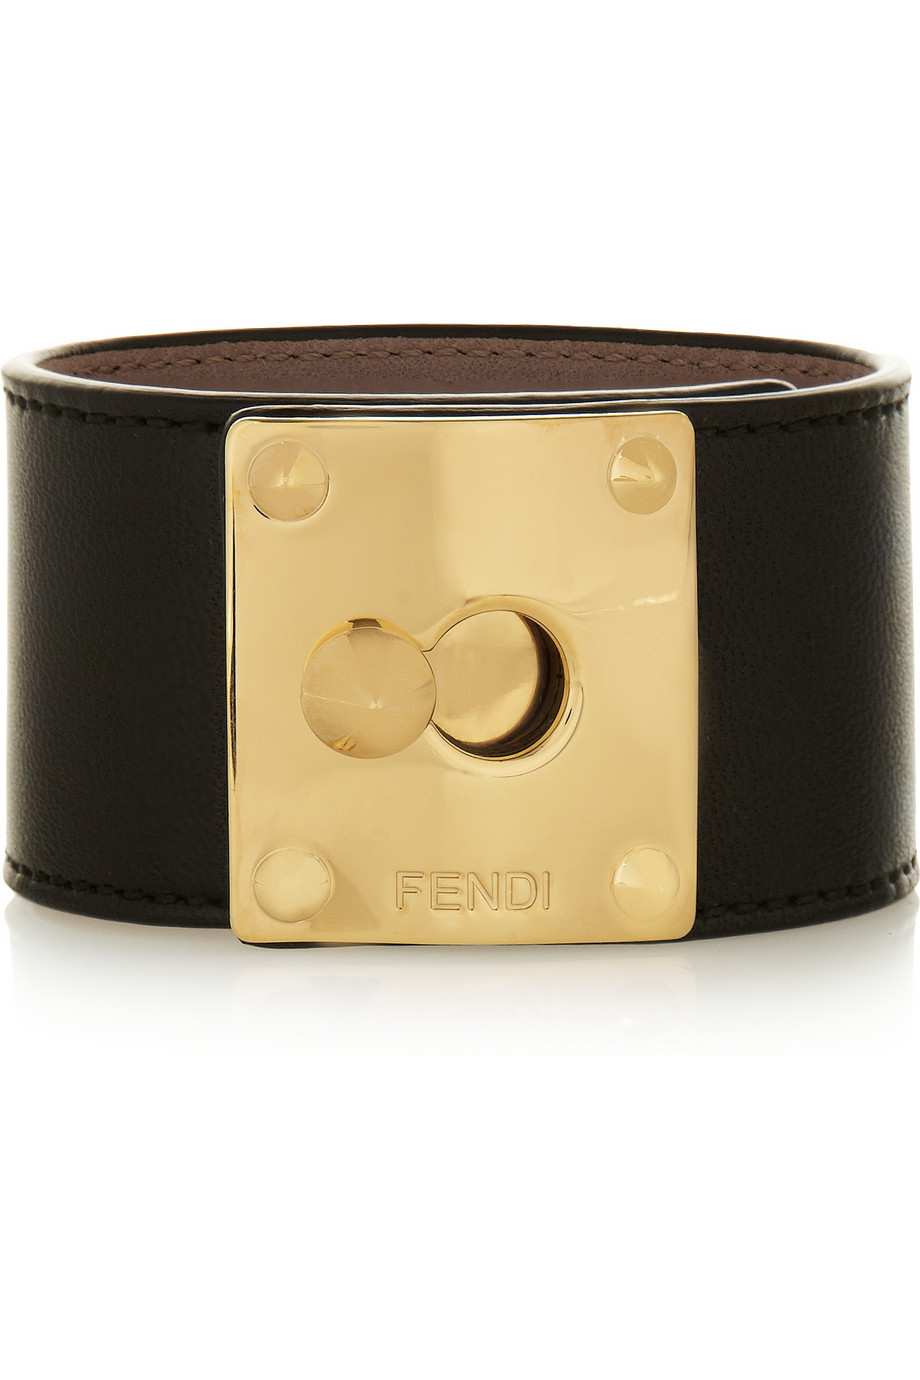 FENDI Leather Cuff buy HERE